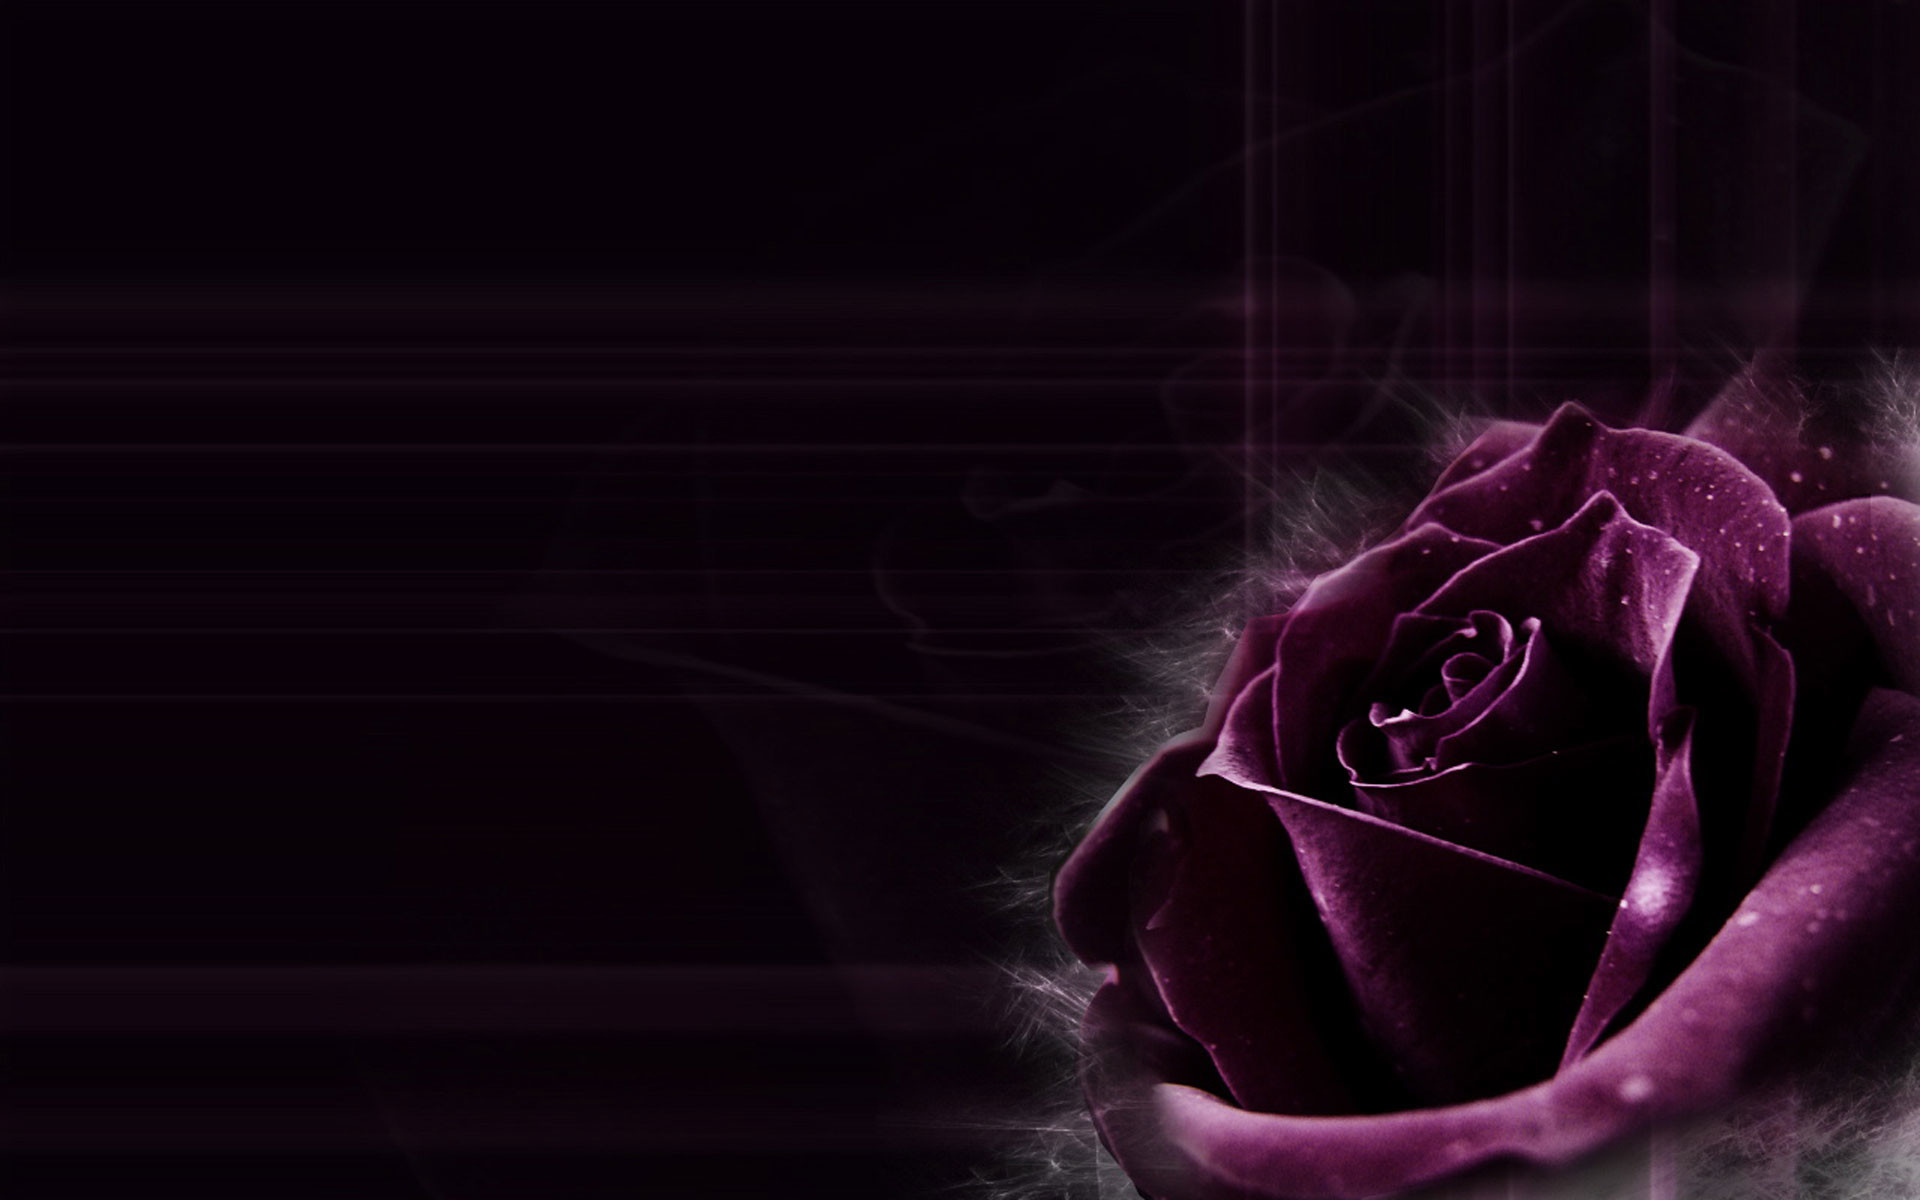 2560x1600 Purple Rose Cool Wallpapers Image HD